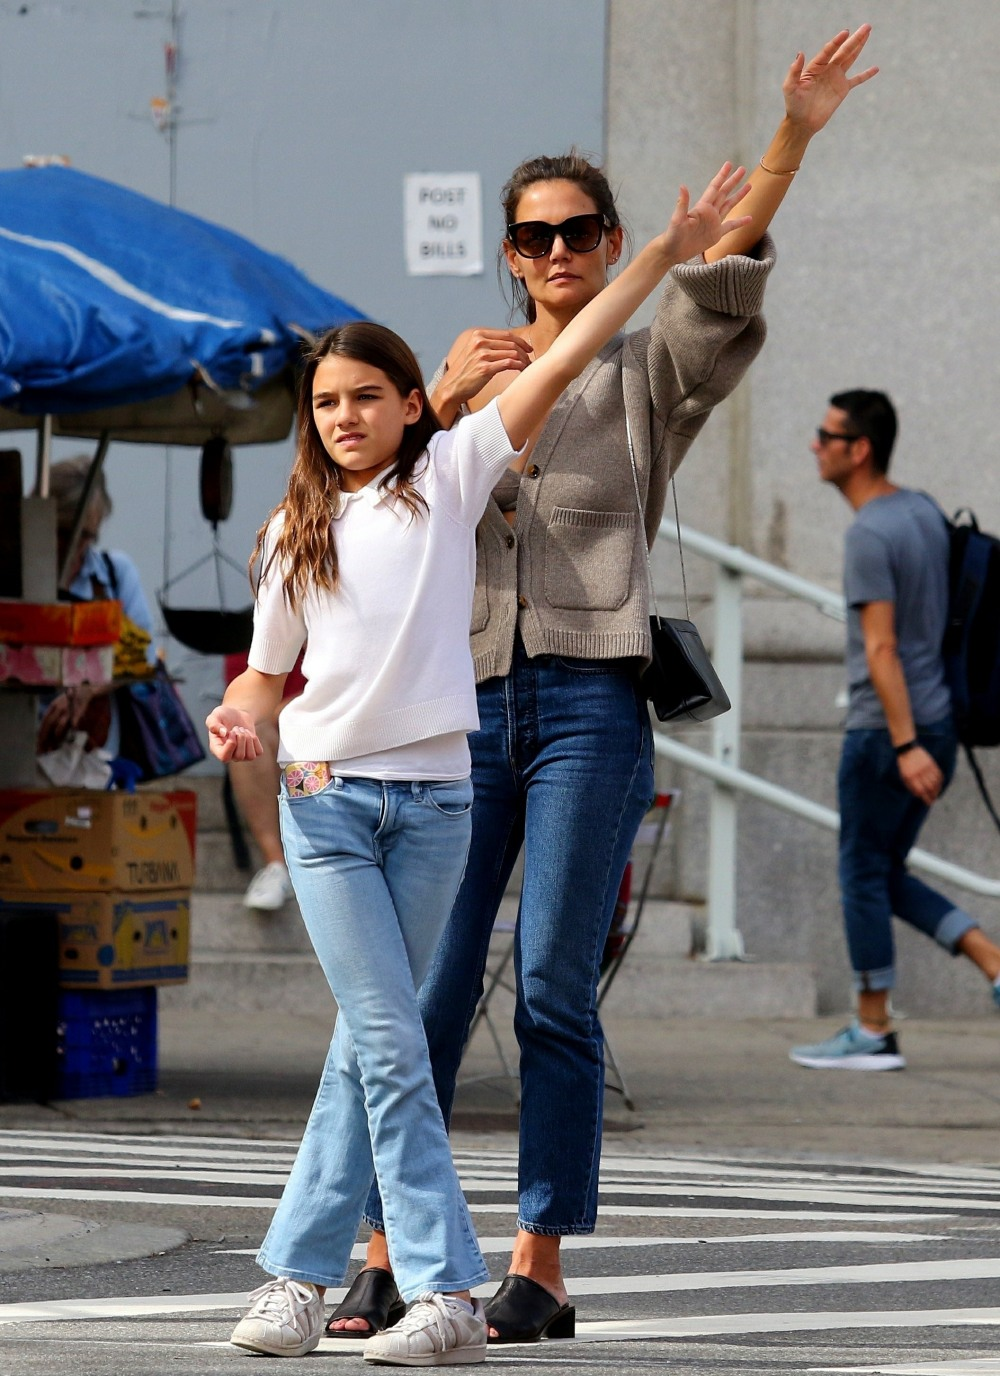 Suri Cruise shares her drink with mom Katie Holmes before hailing a cab together